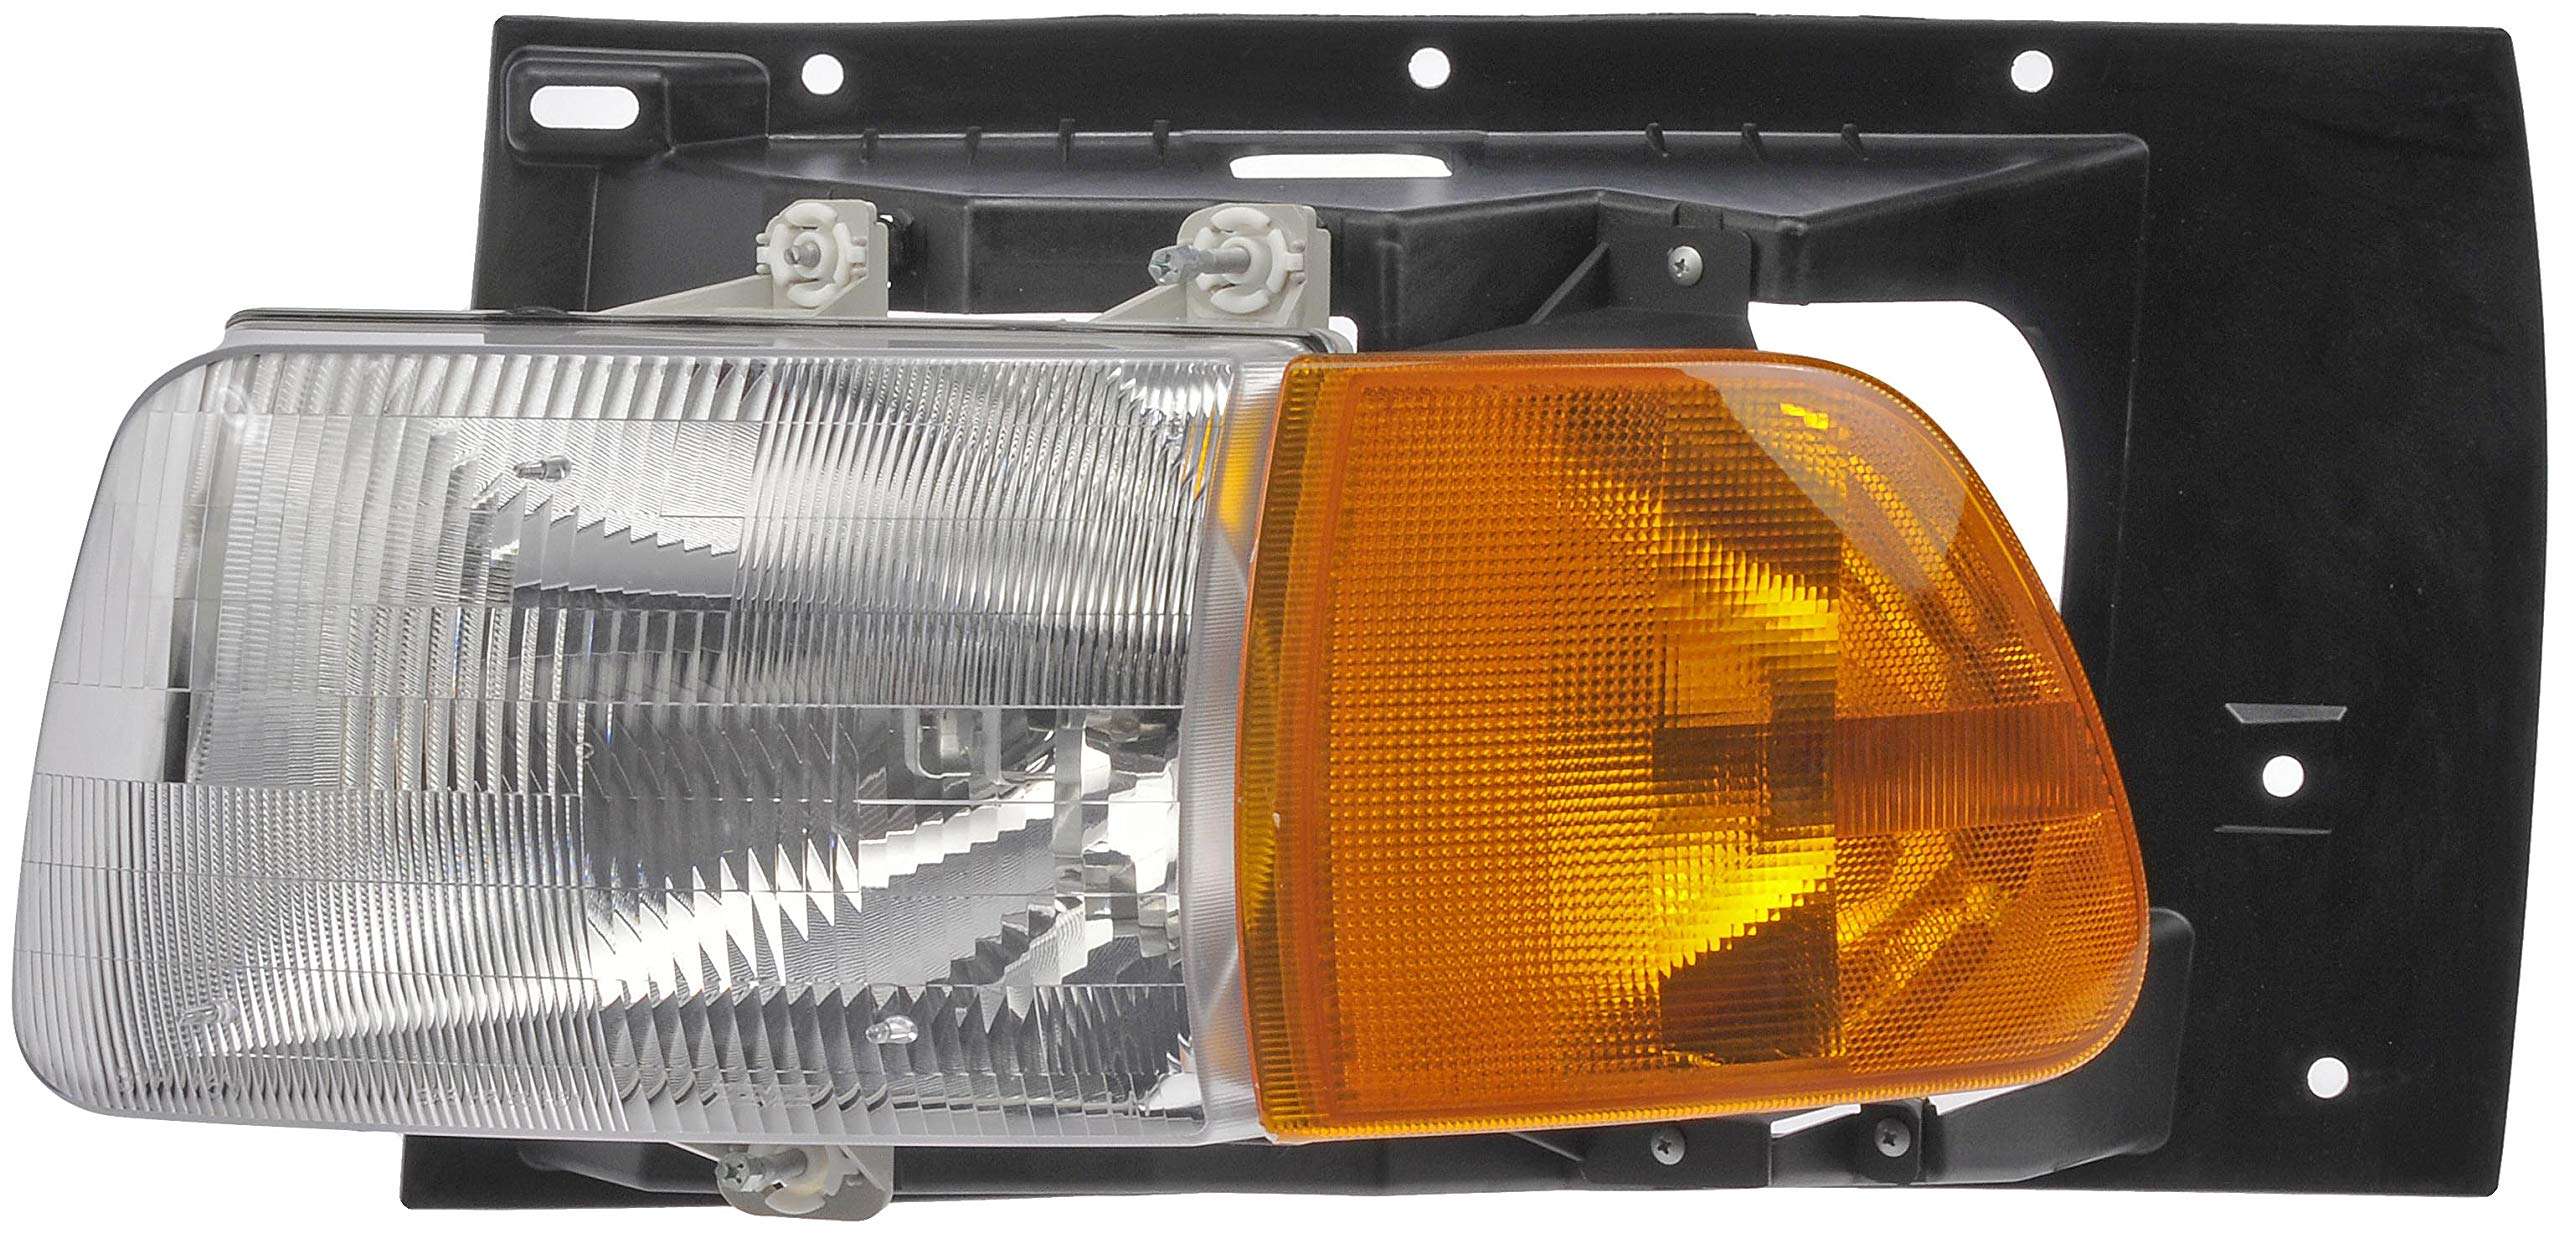 Dorman 888-5302 Driver Side Headlight Assembly For Select Ford / Sterling Truck Models